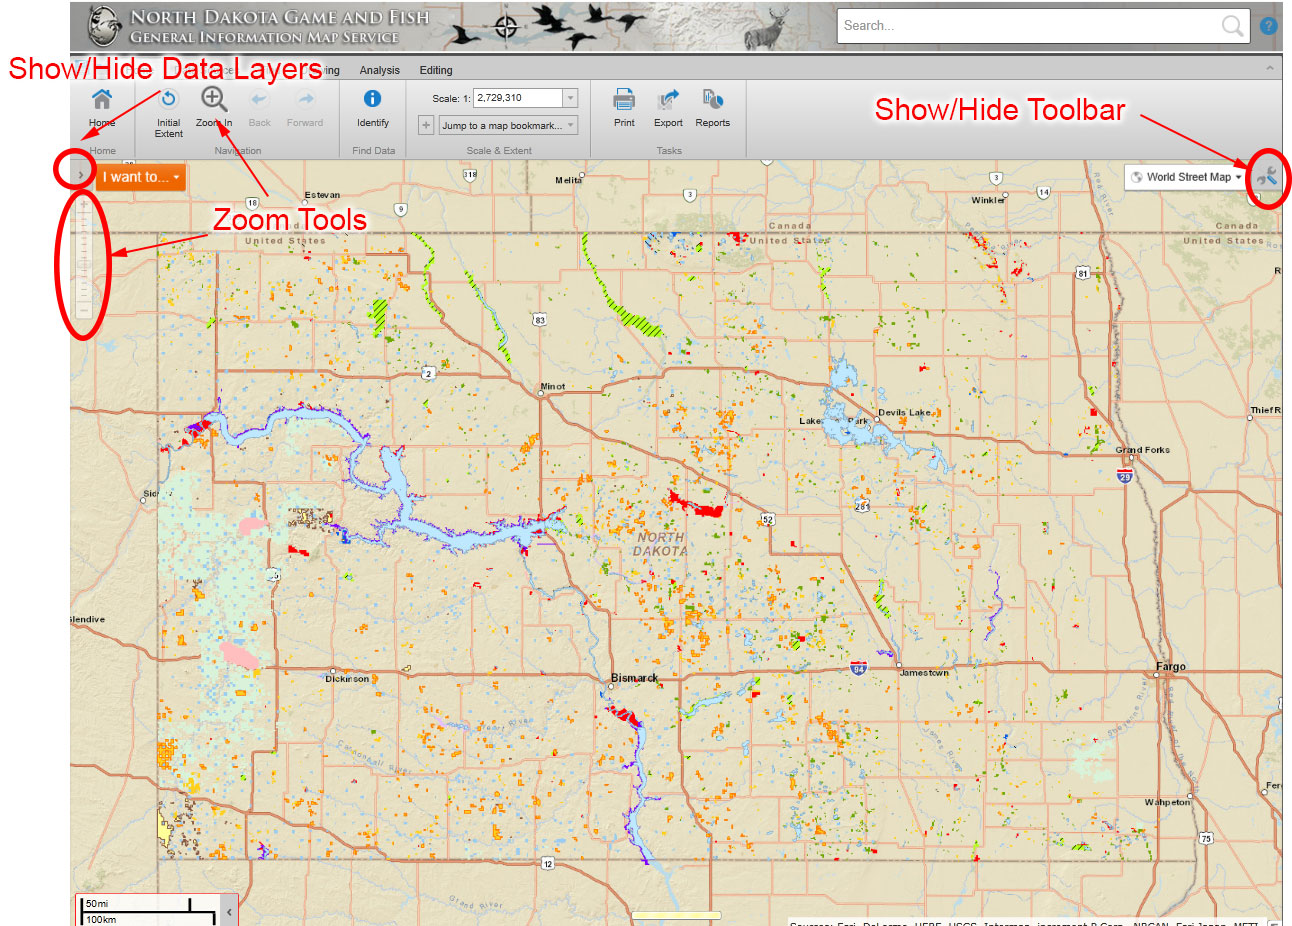 How to customize a map north dakota game and fish for North dakota game and fish